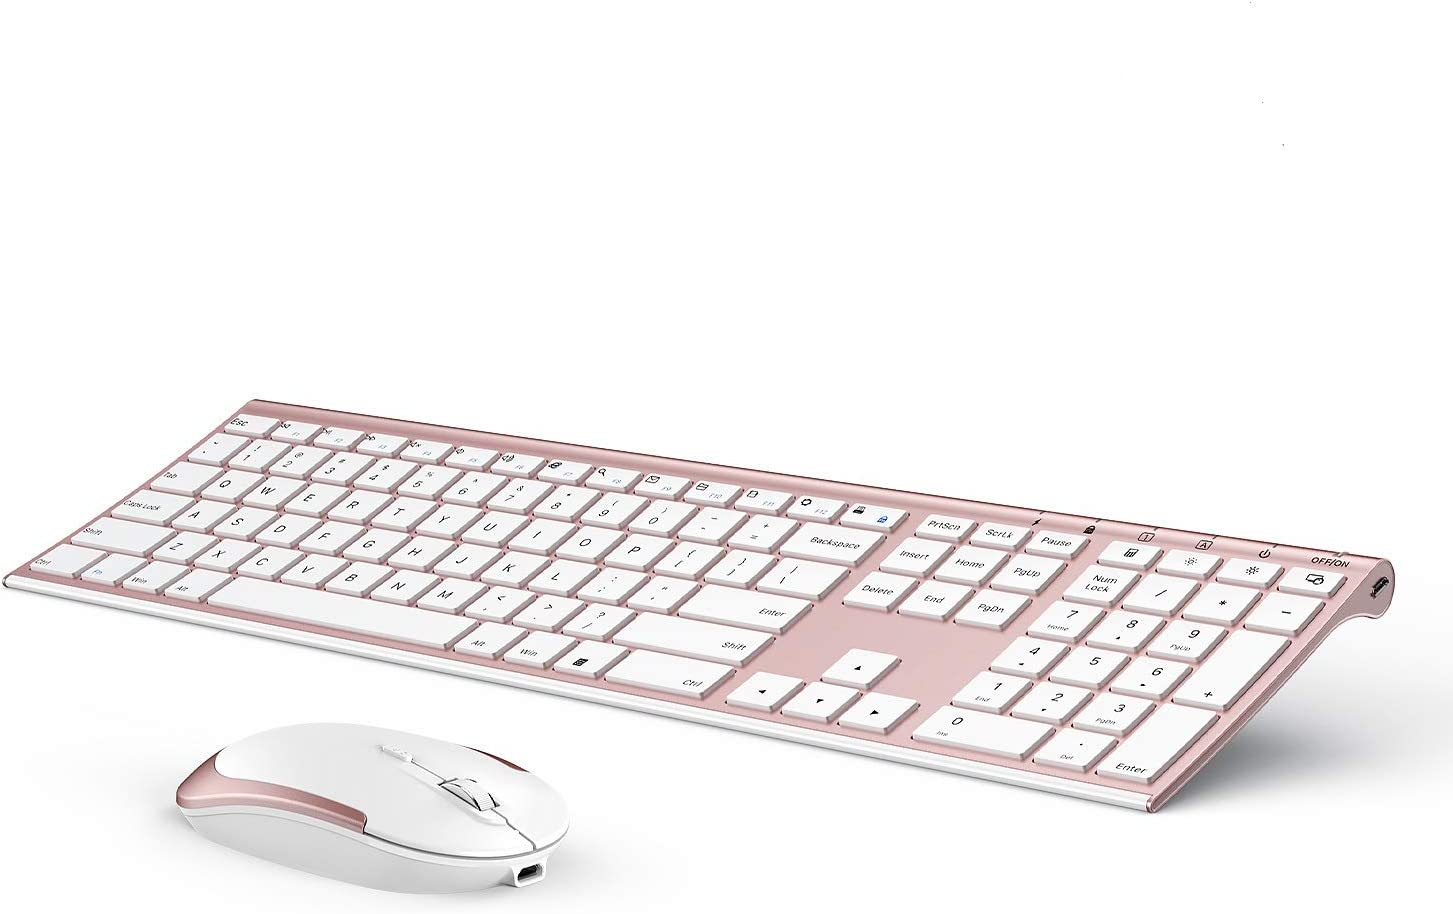 Wireless Keyboard and Mouse, Vssoplor 2.4GHz Rechargeable Compact Quiet Full-Size Keyboard and Mouse Combo with Nano USB Receiver for Windows, Laptop, PC, Notebook (Rose Gold)